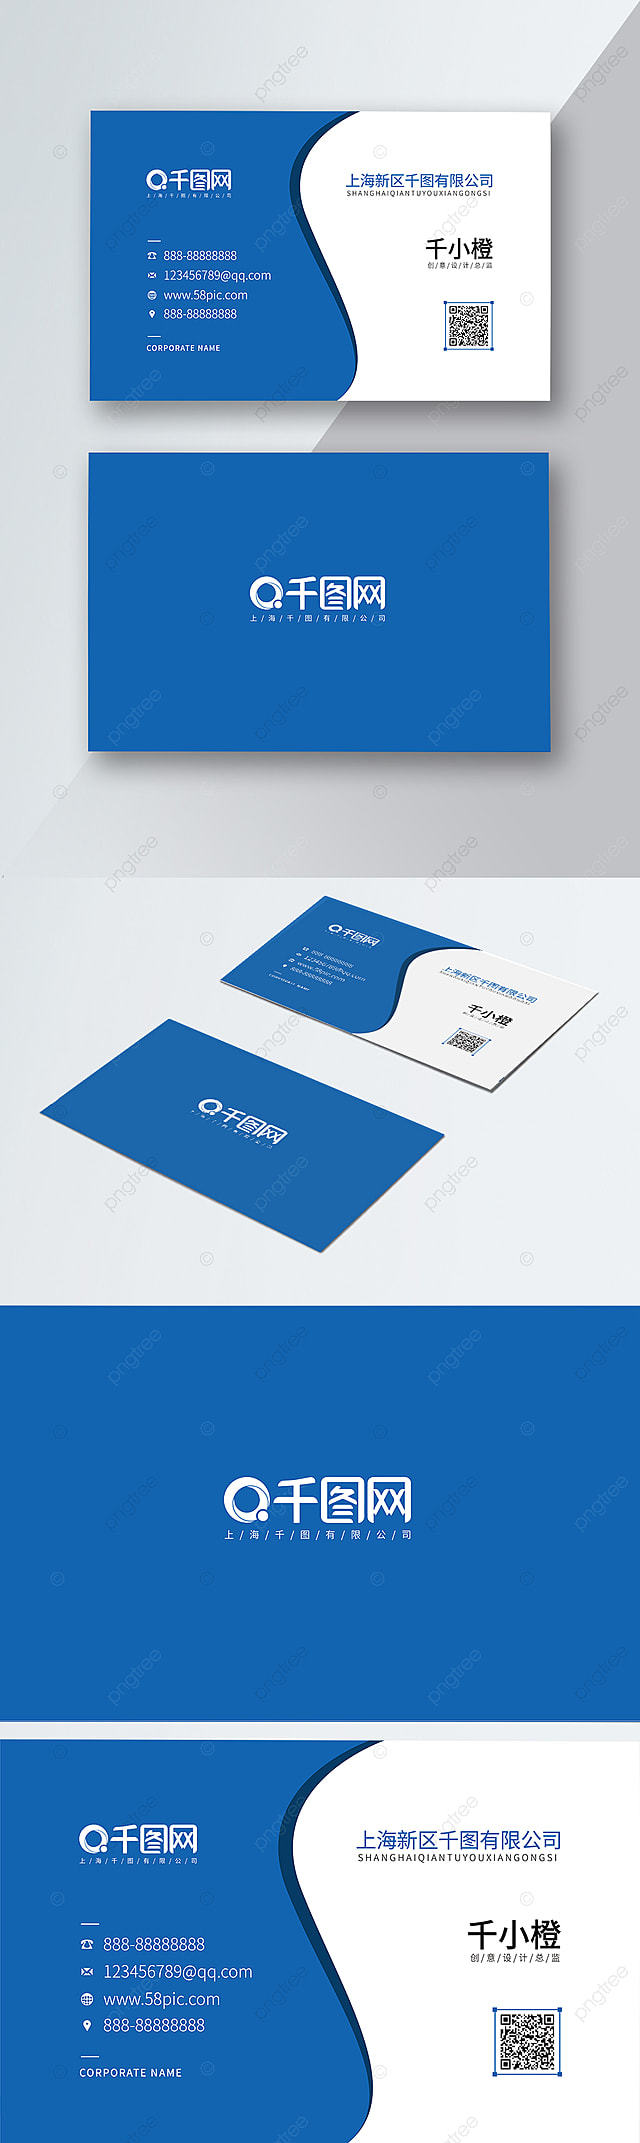 Refrigeration Business Card Air Conditioner Home Appliance